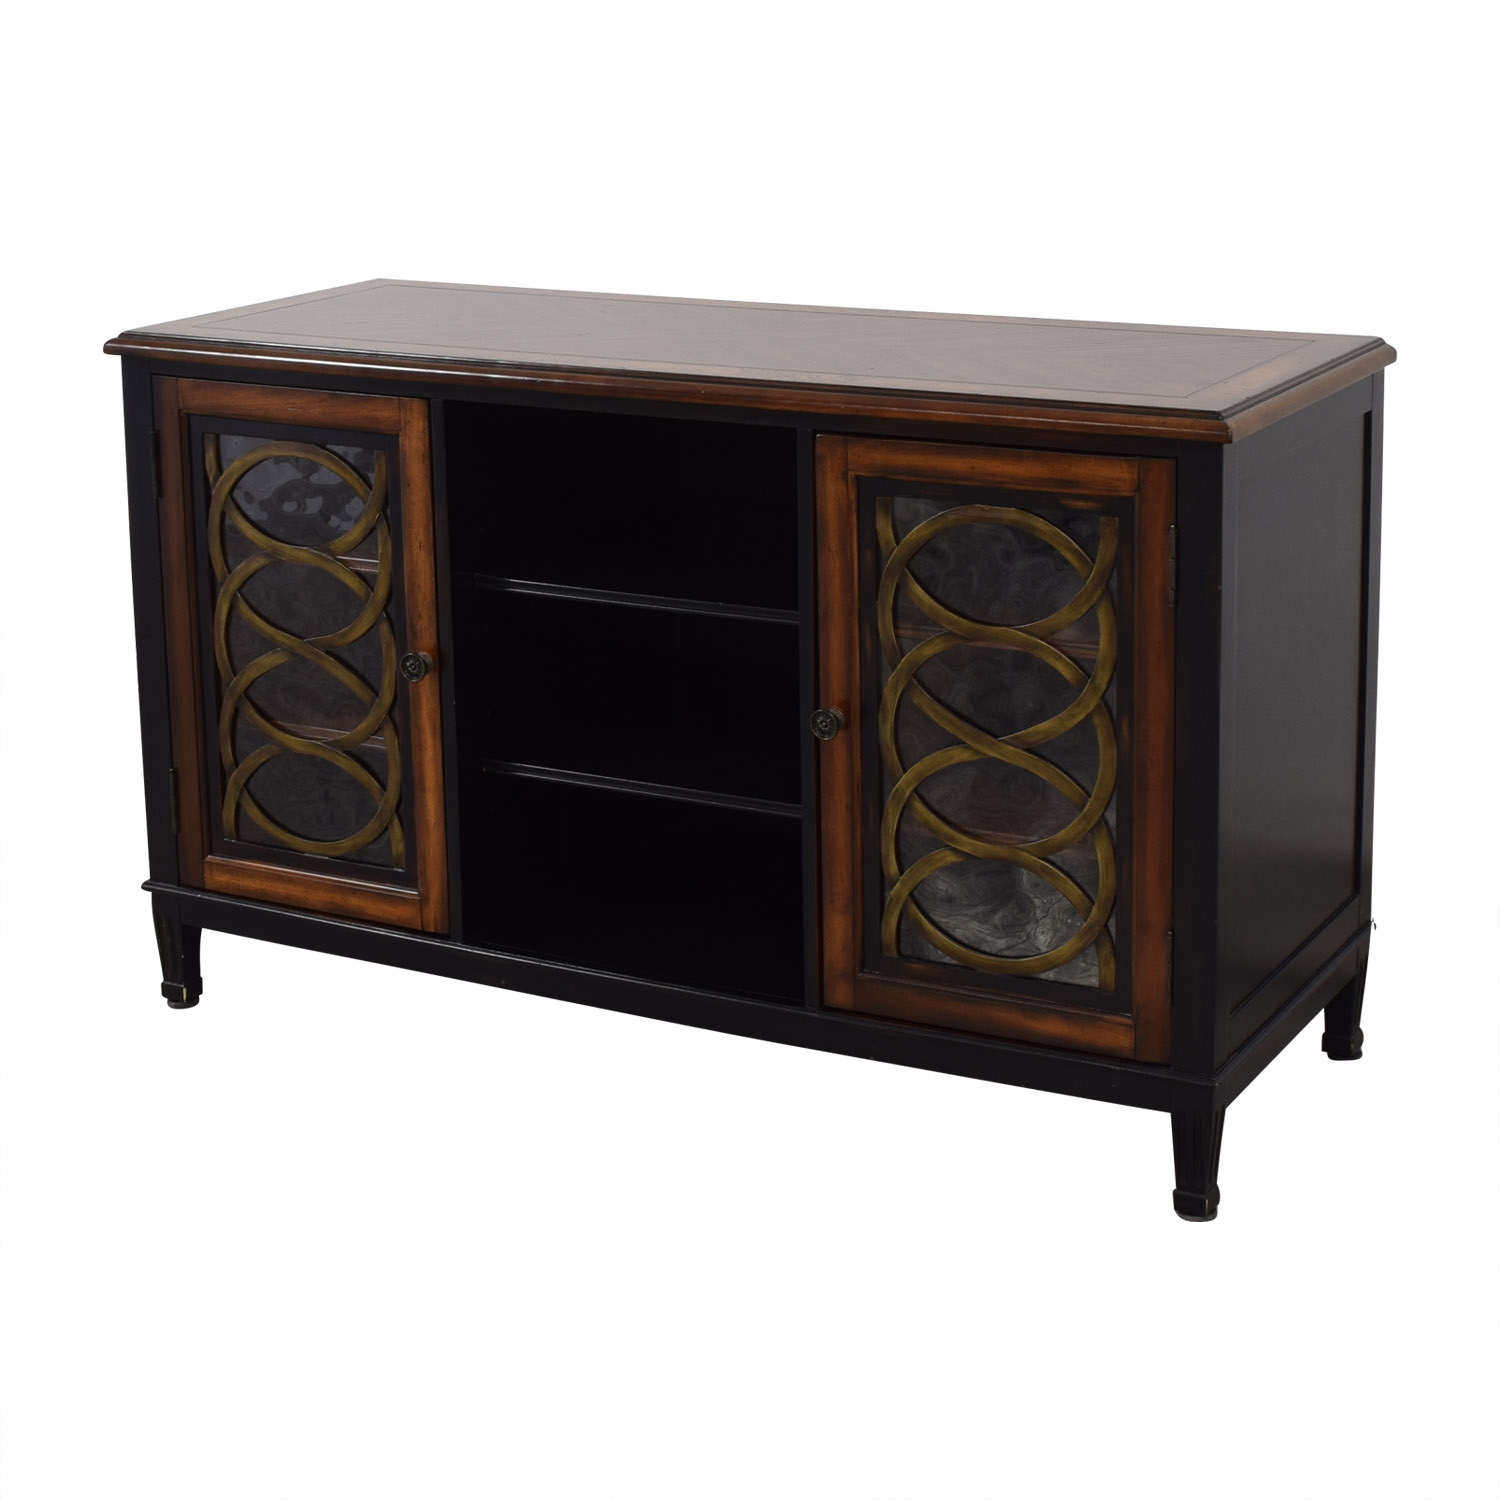 Hooker Furniture Hooker Furniture Entertainment Console discount